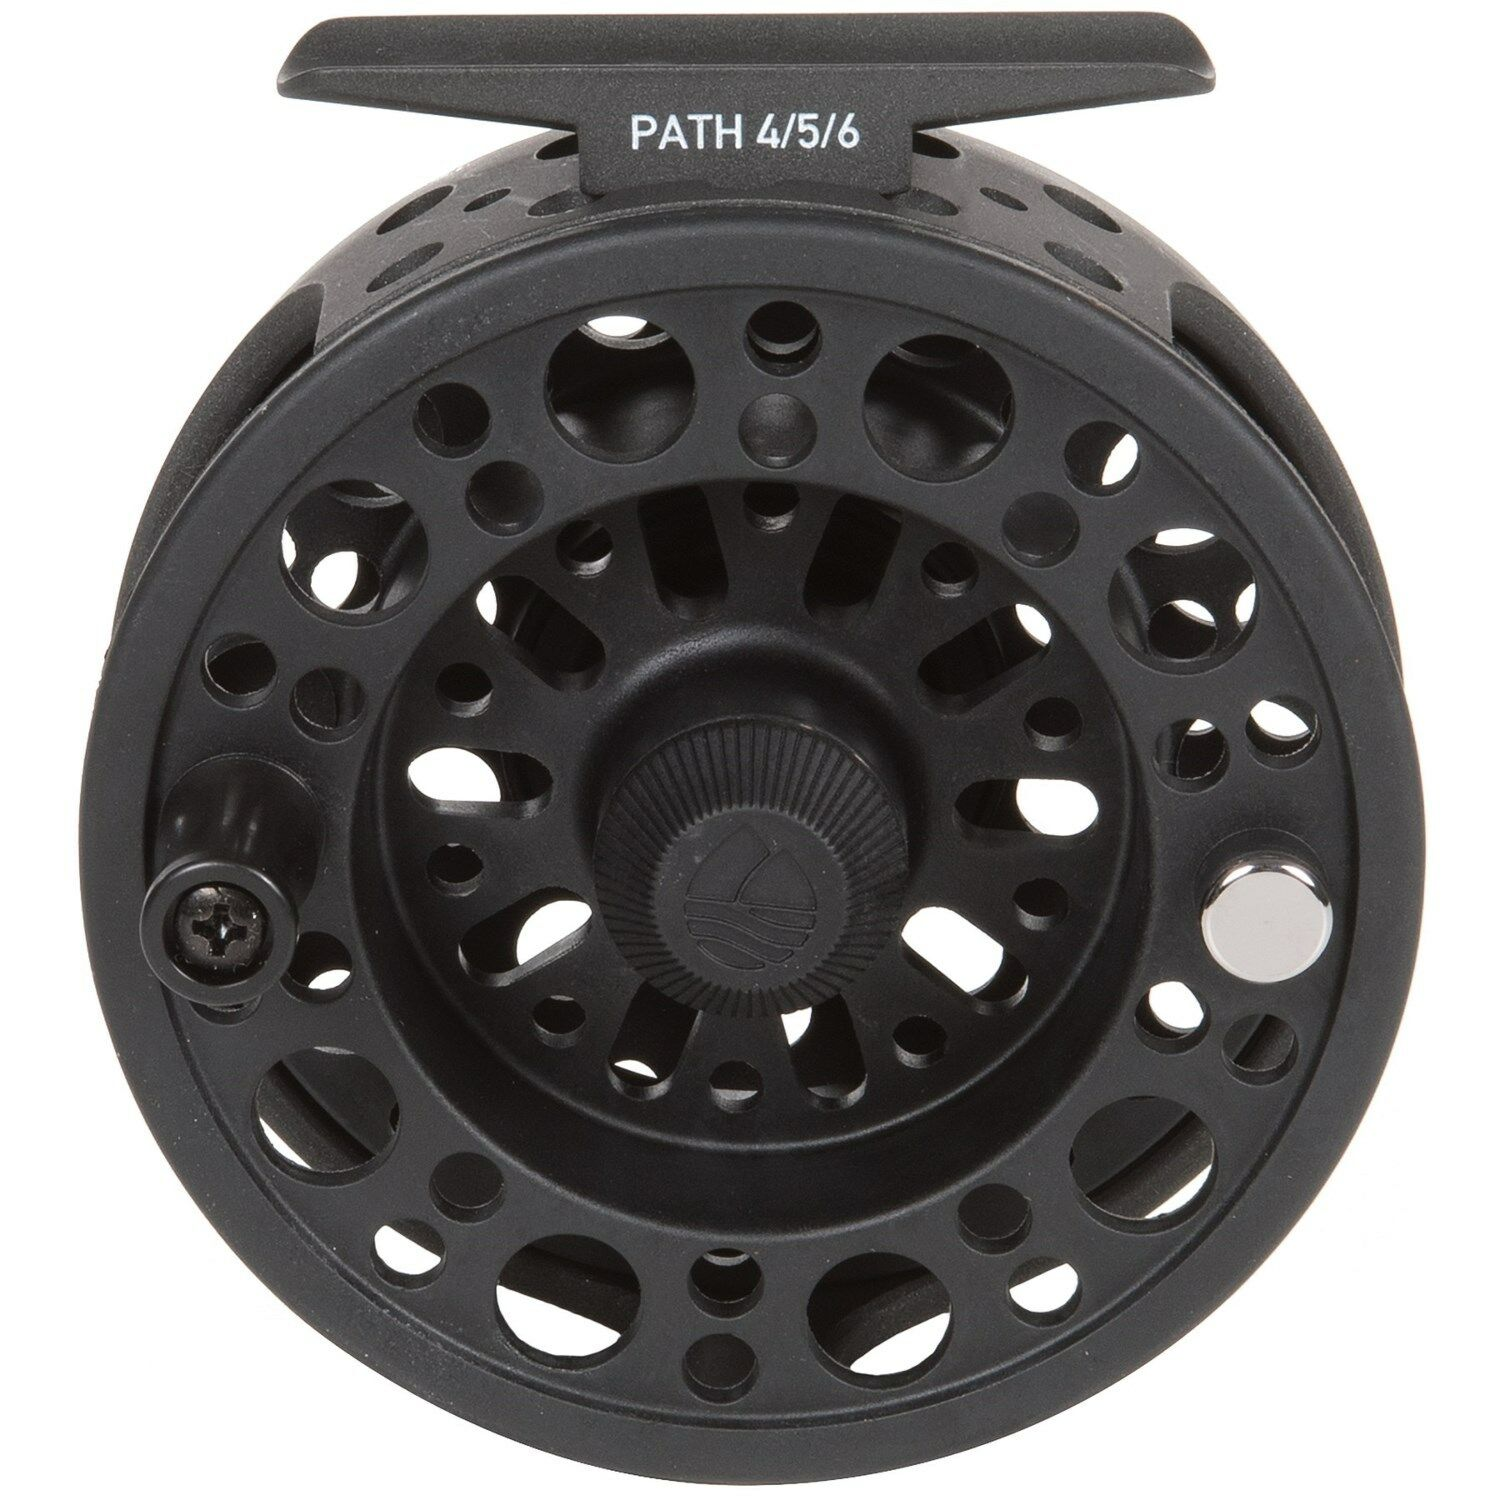 Redington Path 7 8 9 Large Arbor Fly Fishing Reel - Disc Drag System NEW